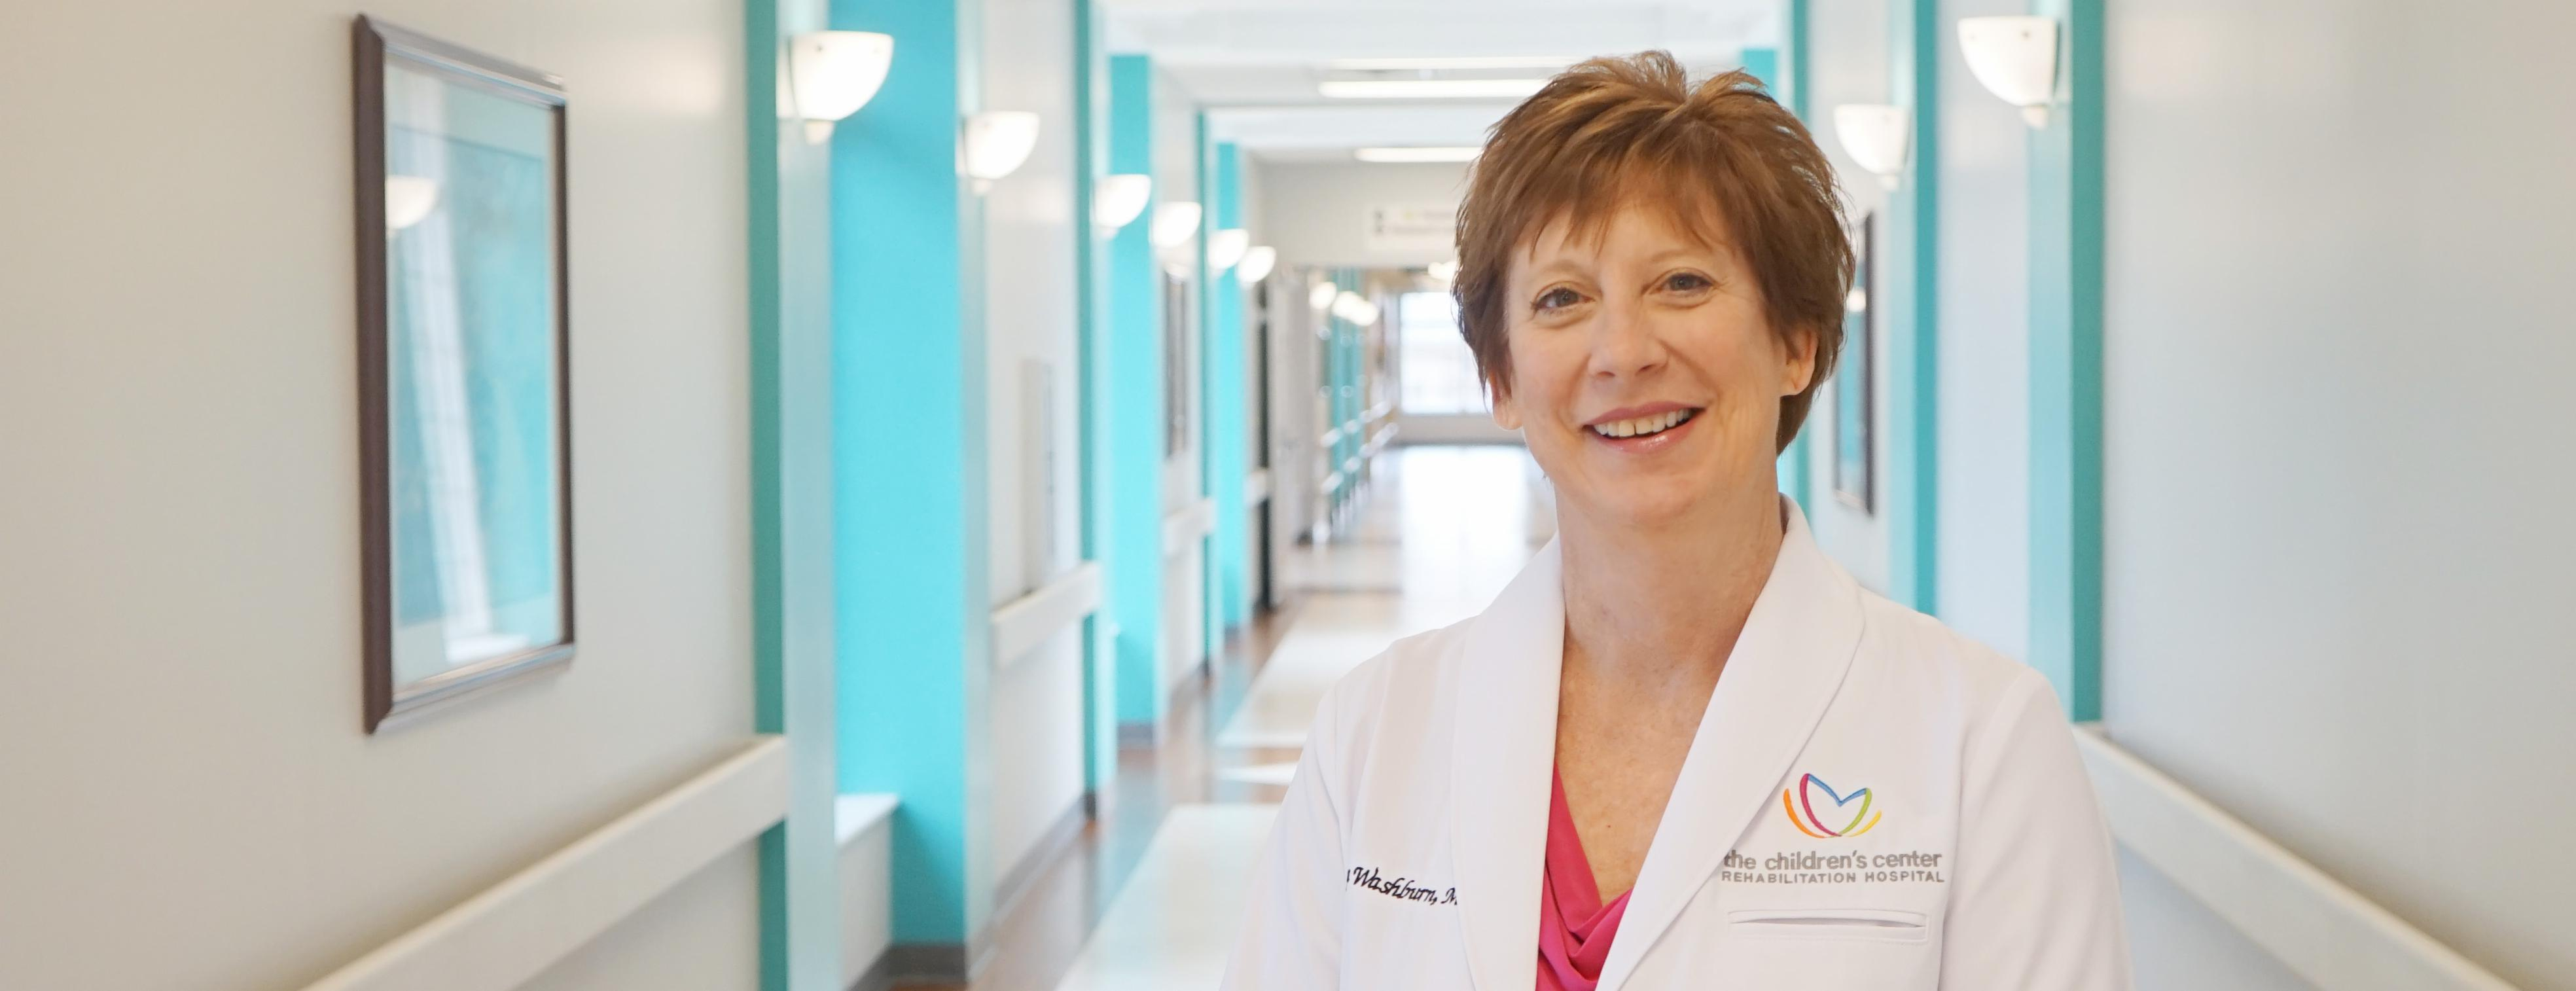 Hospital Welcomes Tonya Washburn MD